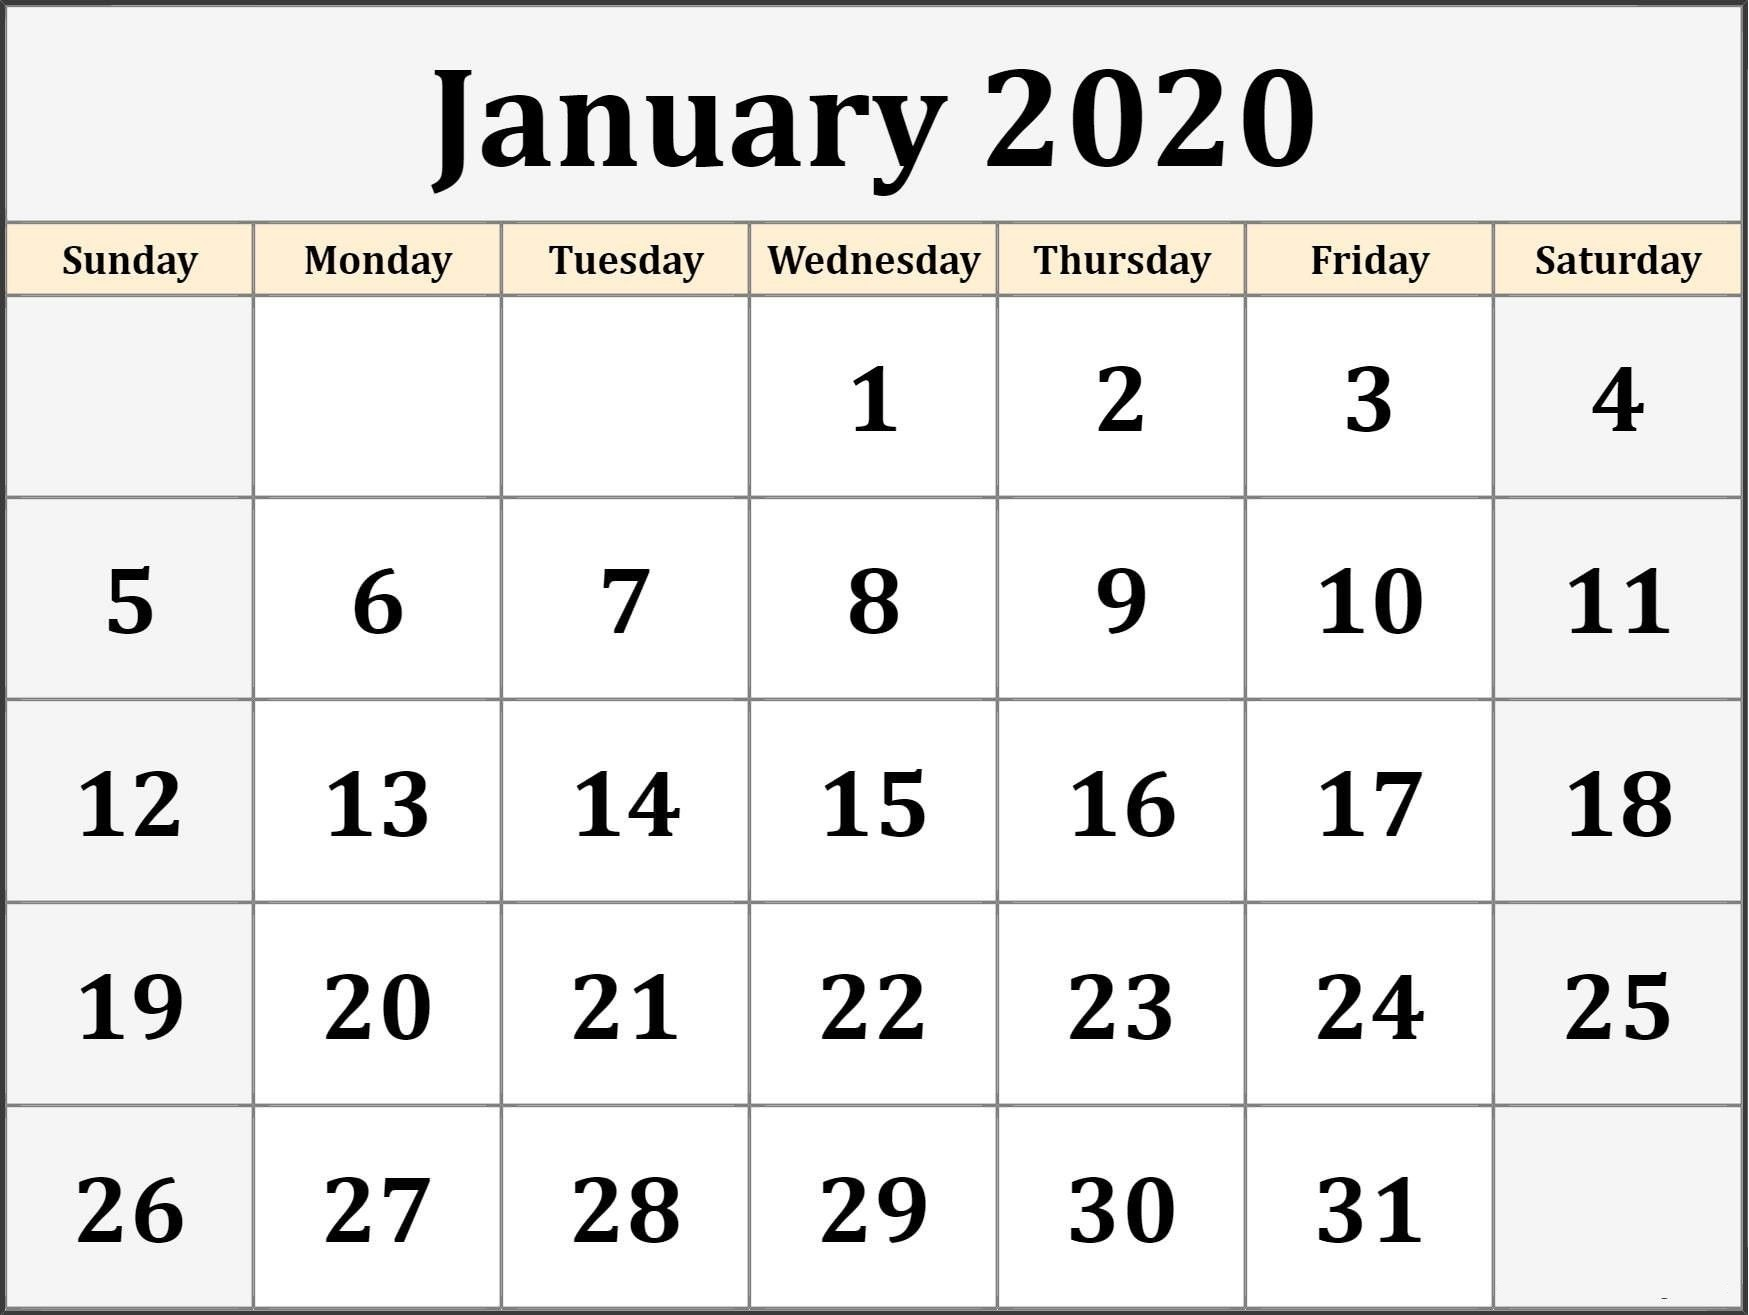 Monthly January 2020 Calendar Template